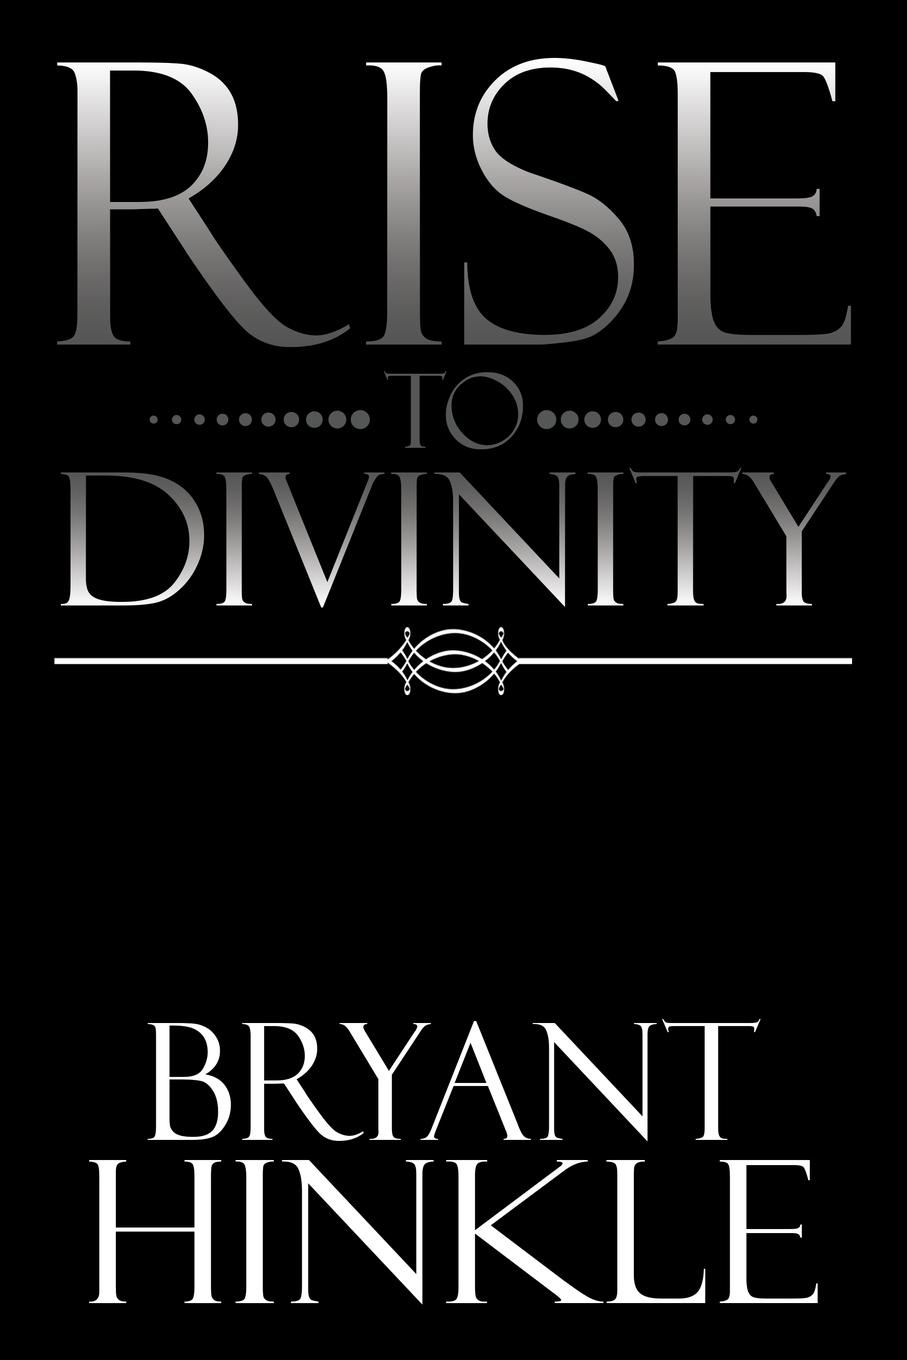 Bryant Hinkle Rise to Divinity robert halliwell a way back to then